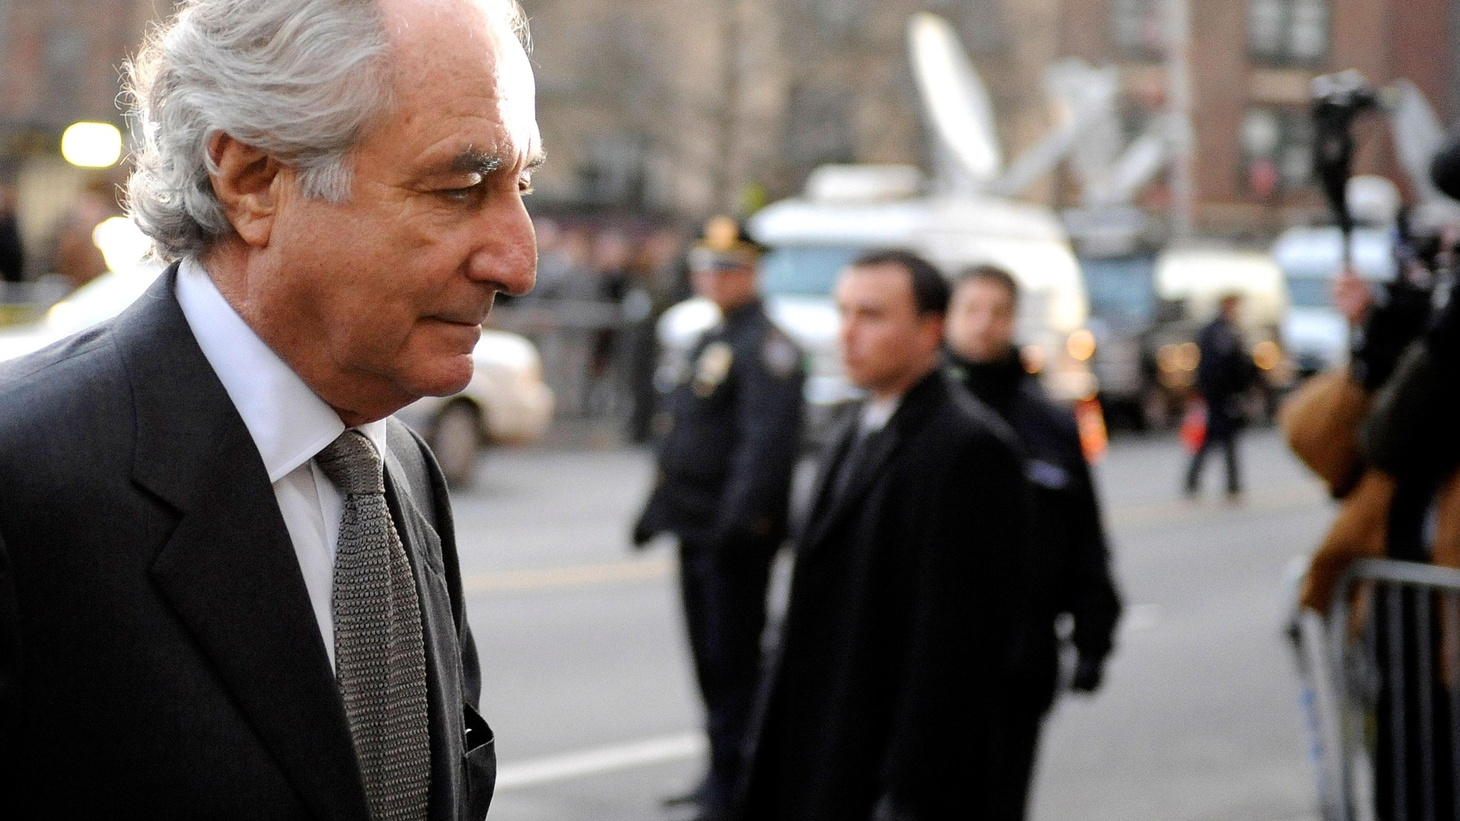 Bernard Madoff violated the trust and burned up the fortunes of 4800 people. He's likely to spend the rest of his life behind bars. But until now, has he been protected -- by a de-regulated financial system and a culture of greed? Also, the Iraqi shoe-thrower gets three years, and another Obama appointee steps down, this time from a high-level intelligence job.